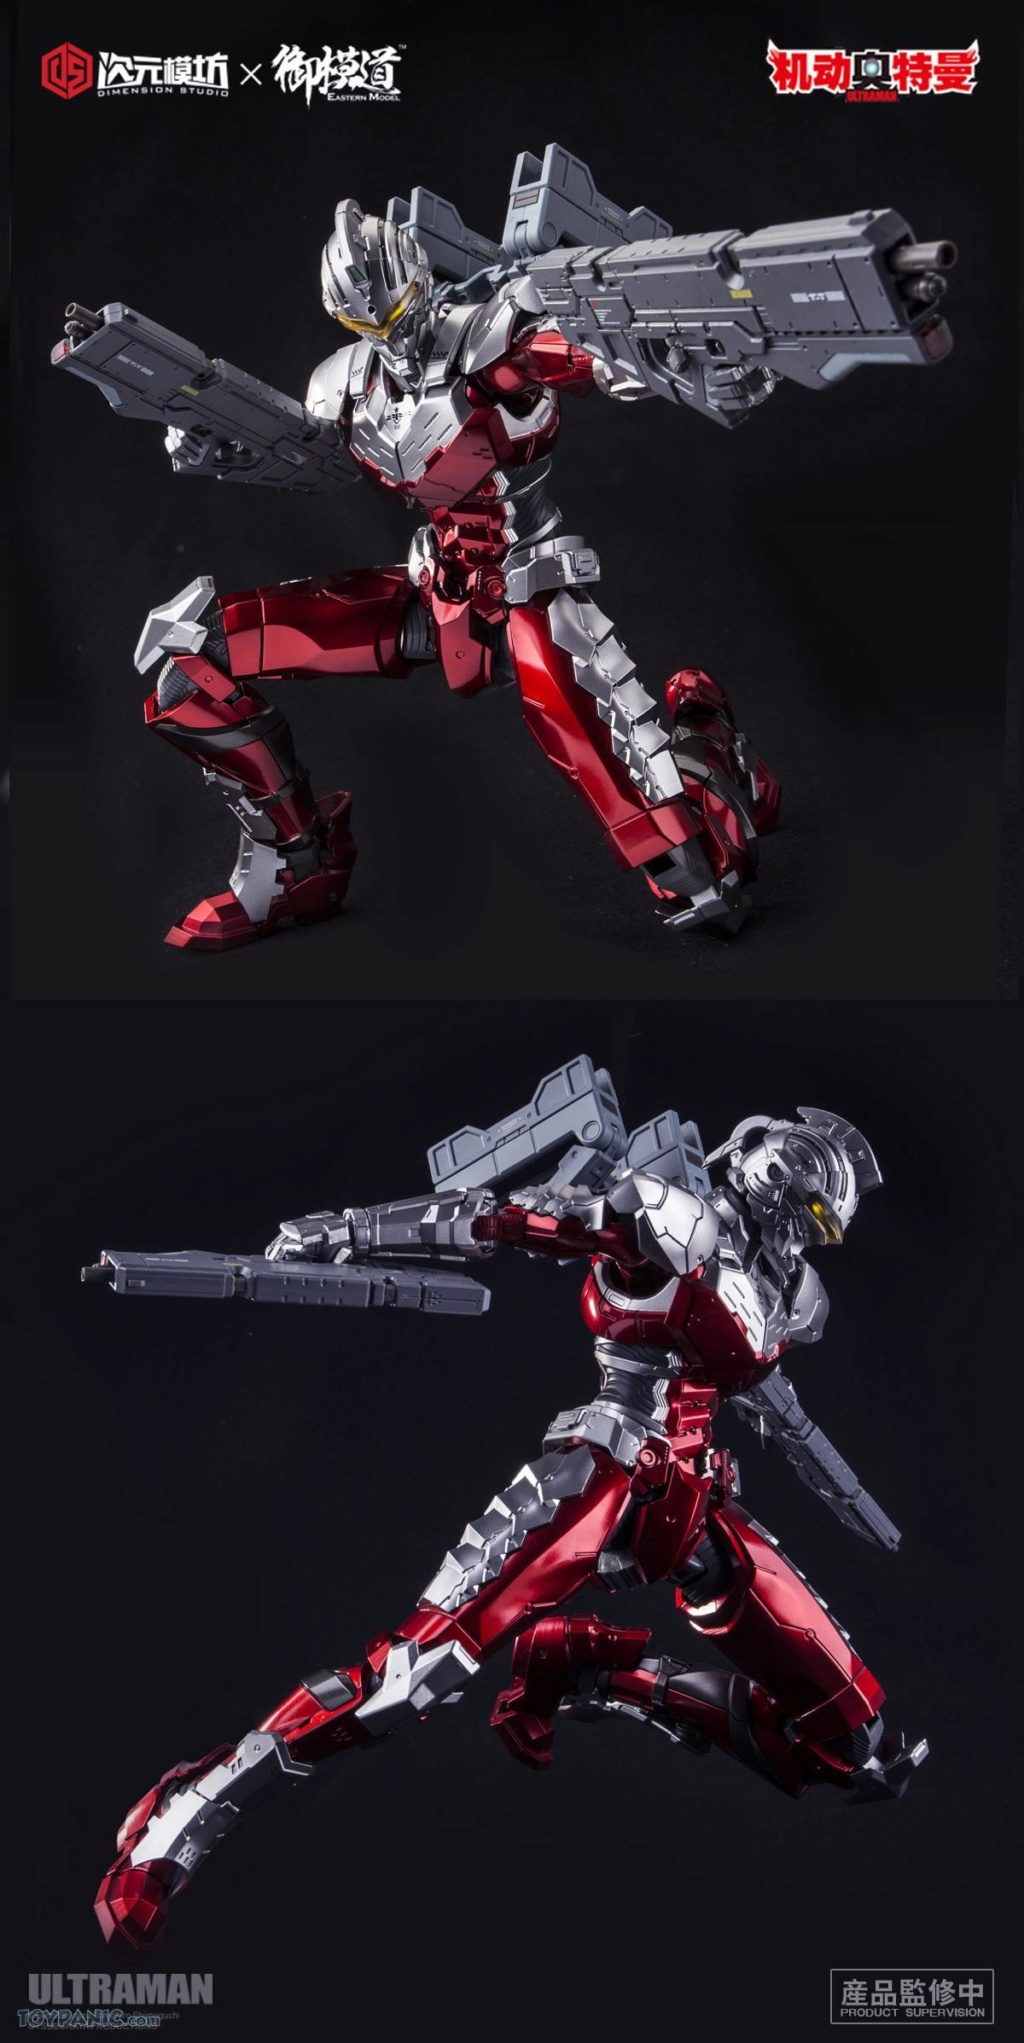 Ultraman - NEW PRODUCT: Dimension Studio X Model Principle: 1/6 Ultra Seven Suit Ver. 7.0 Action Figure  15201915